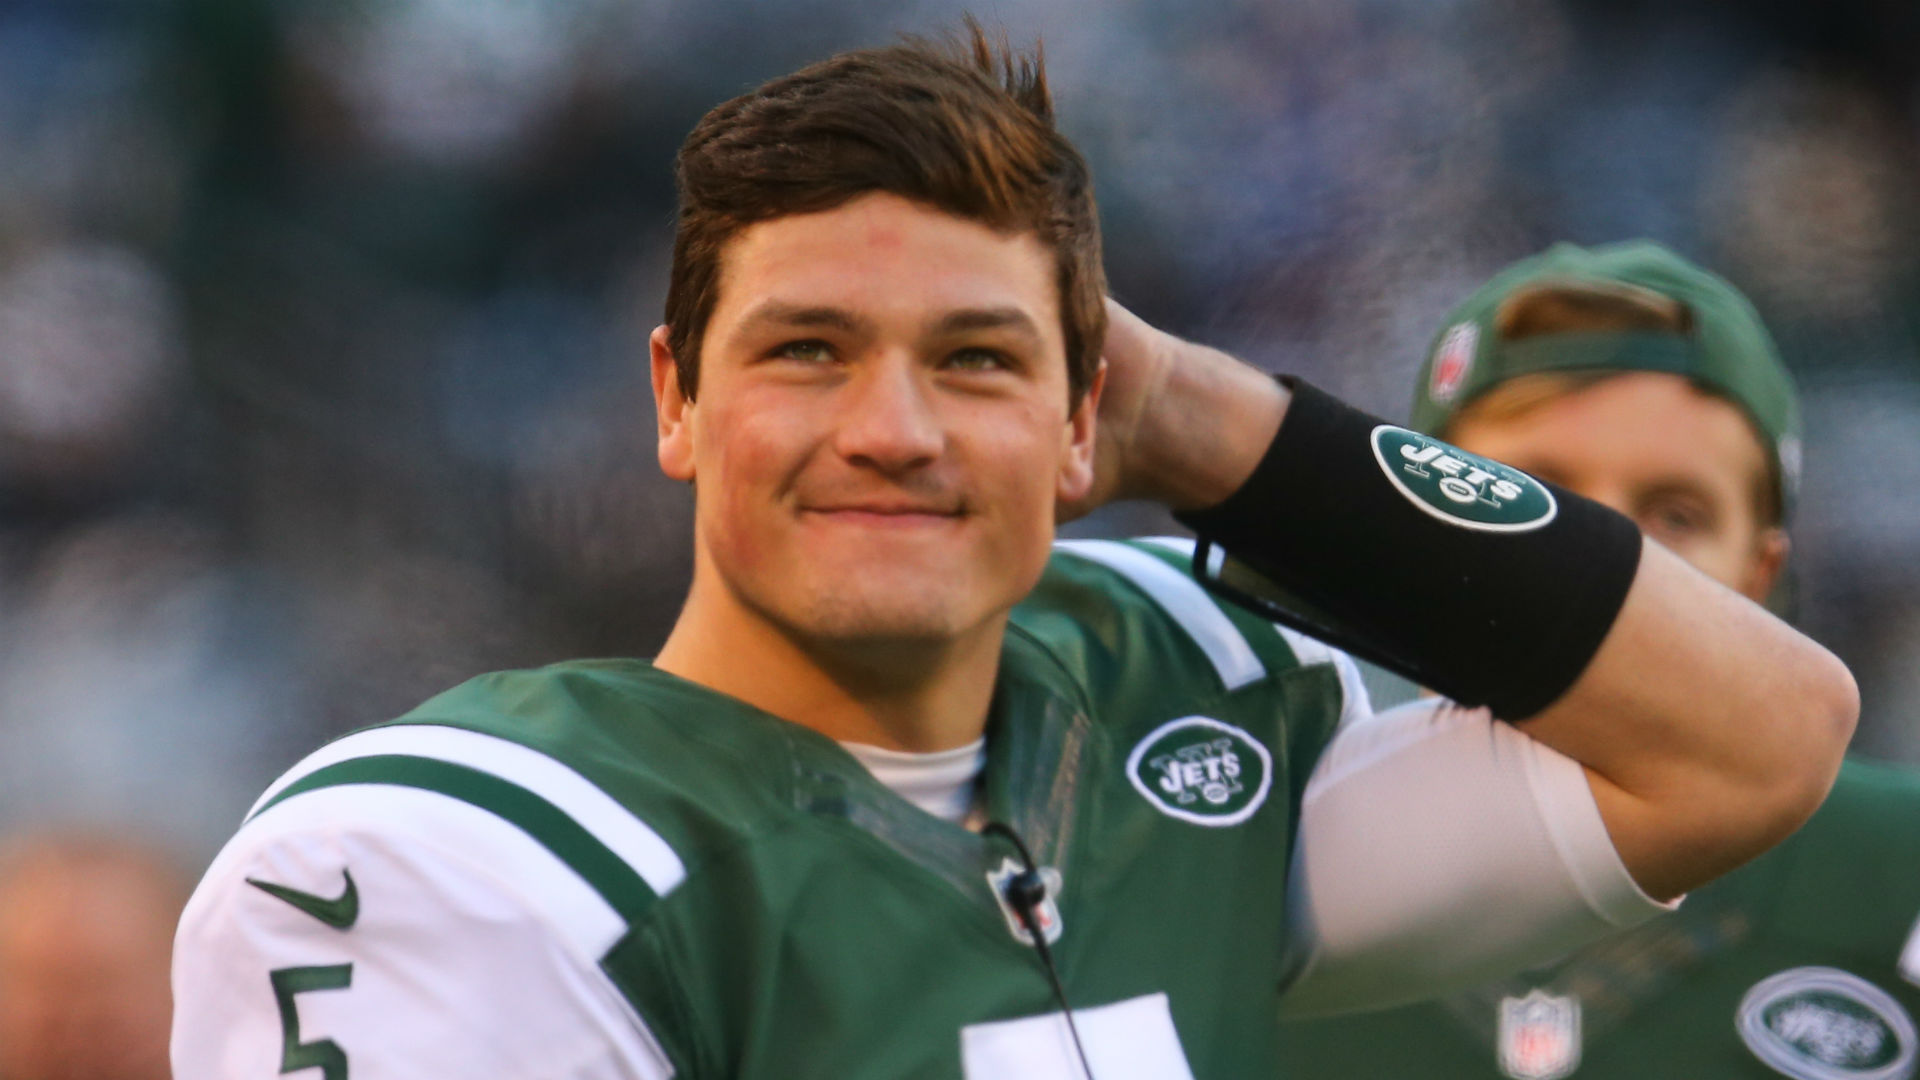 Former Jets QB Christian Hackenberg struggles in AAF debut